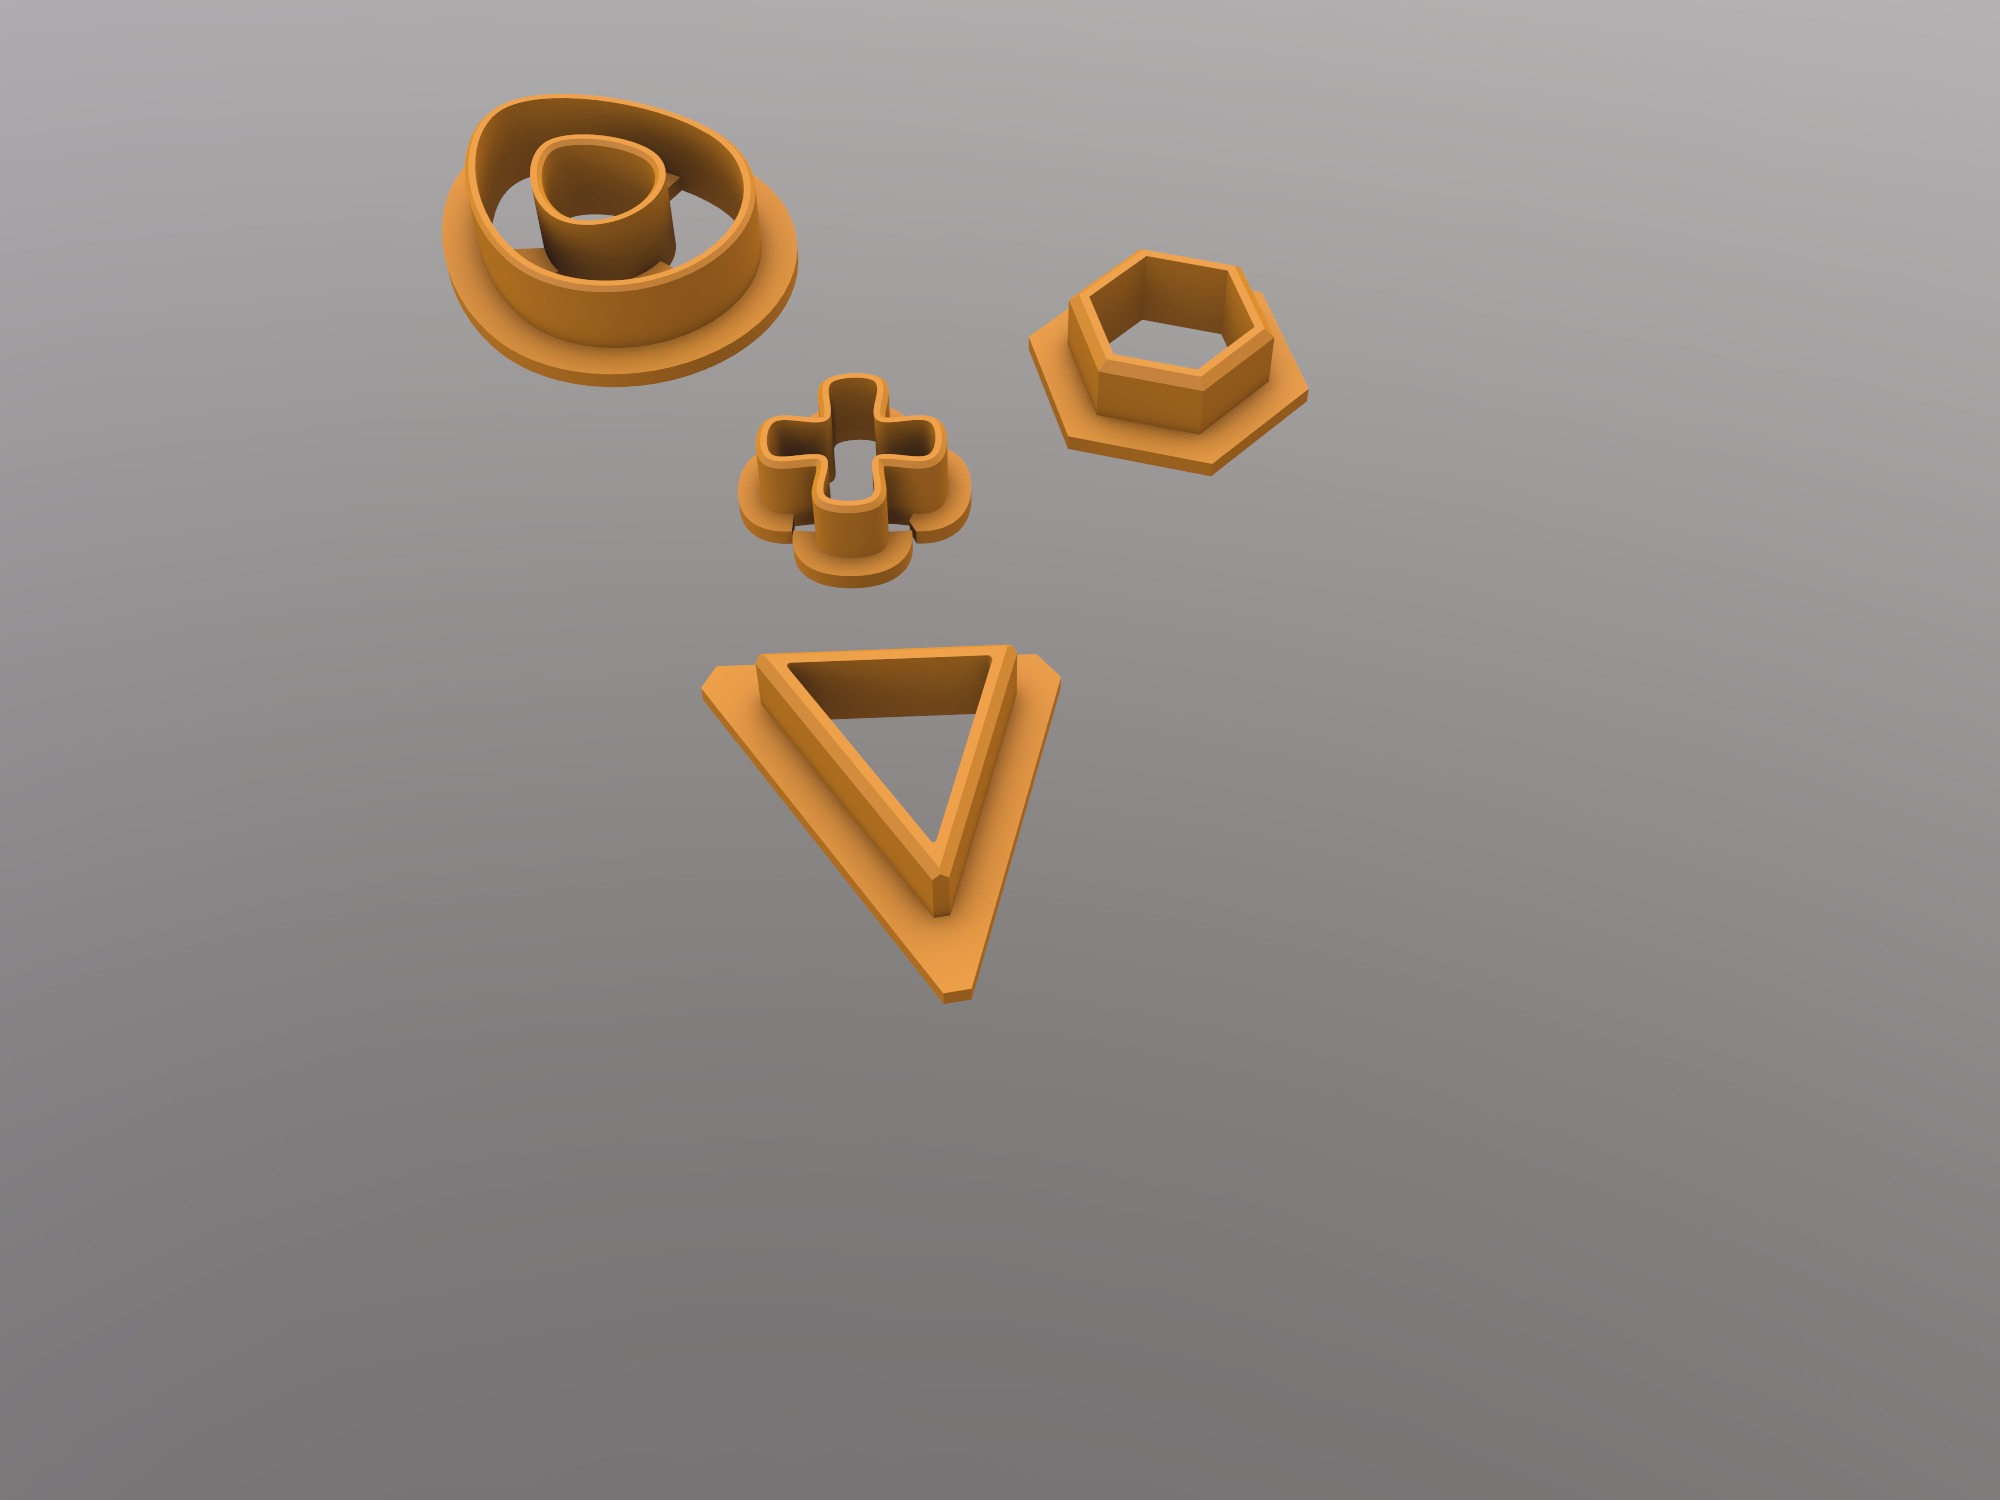 cookie cutters - 3D design by Johanna Rydeman on Oct 19, 2018